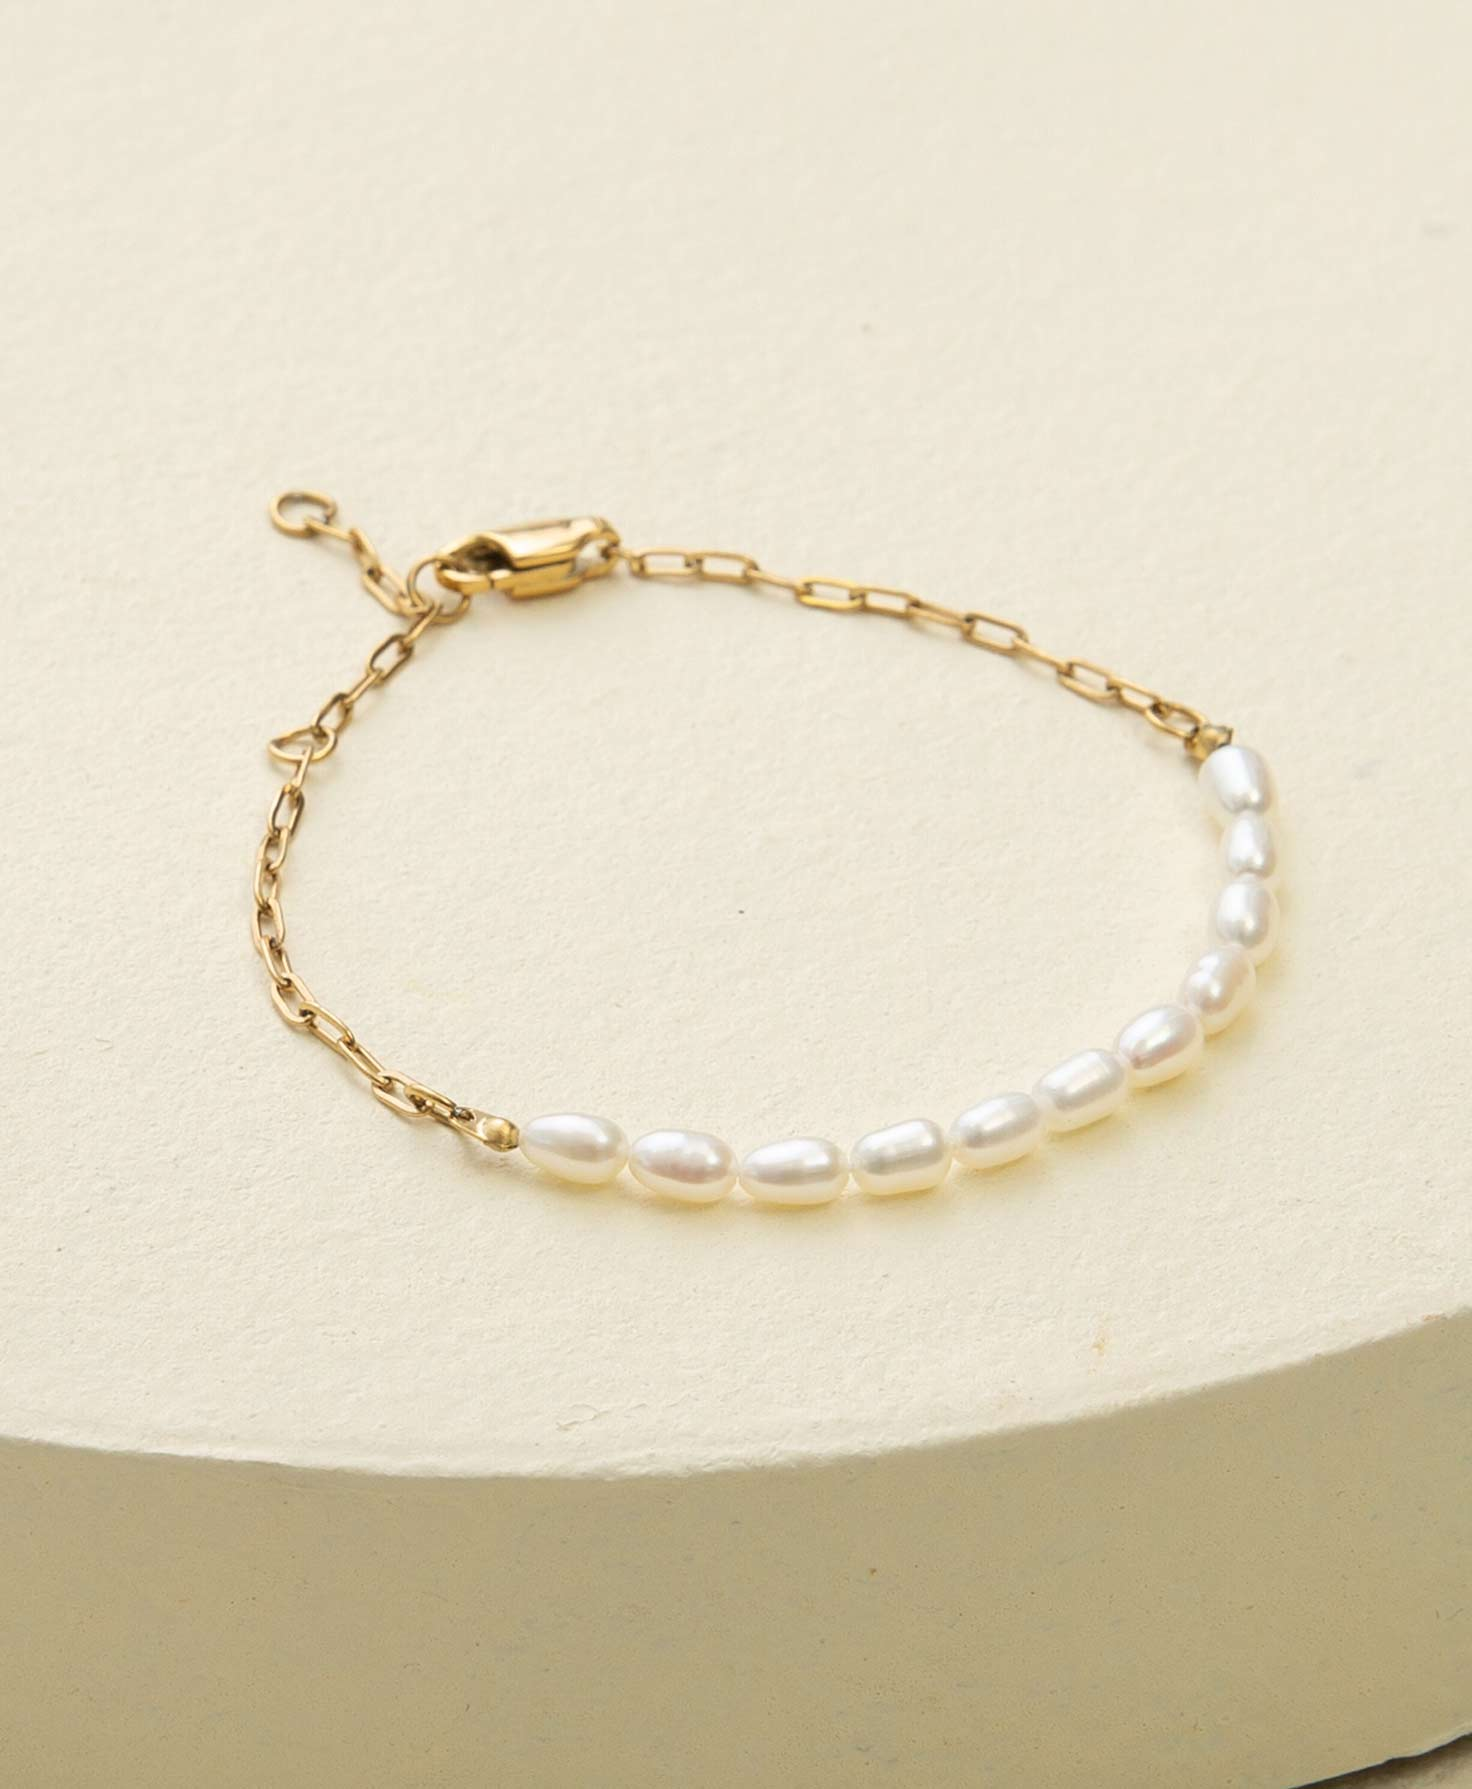 The Splendid Bracelet lays on a cream-colored block. It has a shiny gold chain made of oval-shaped links. At the front of the bracelet, the chain meets a row of 11 shining, oval-shaped pearls. A lobster-claw clasp secures the bracelet.